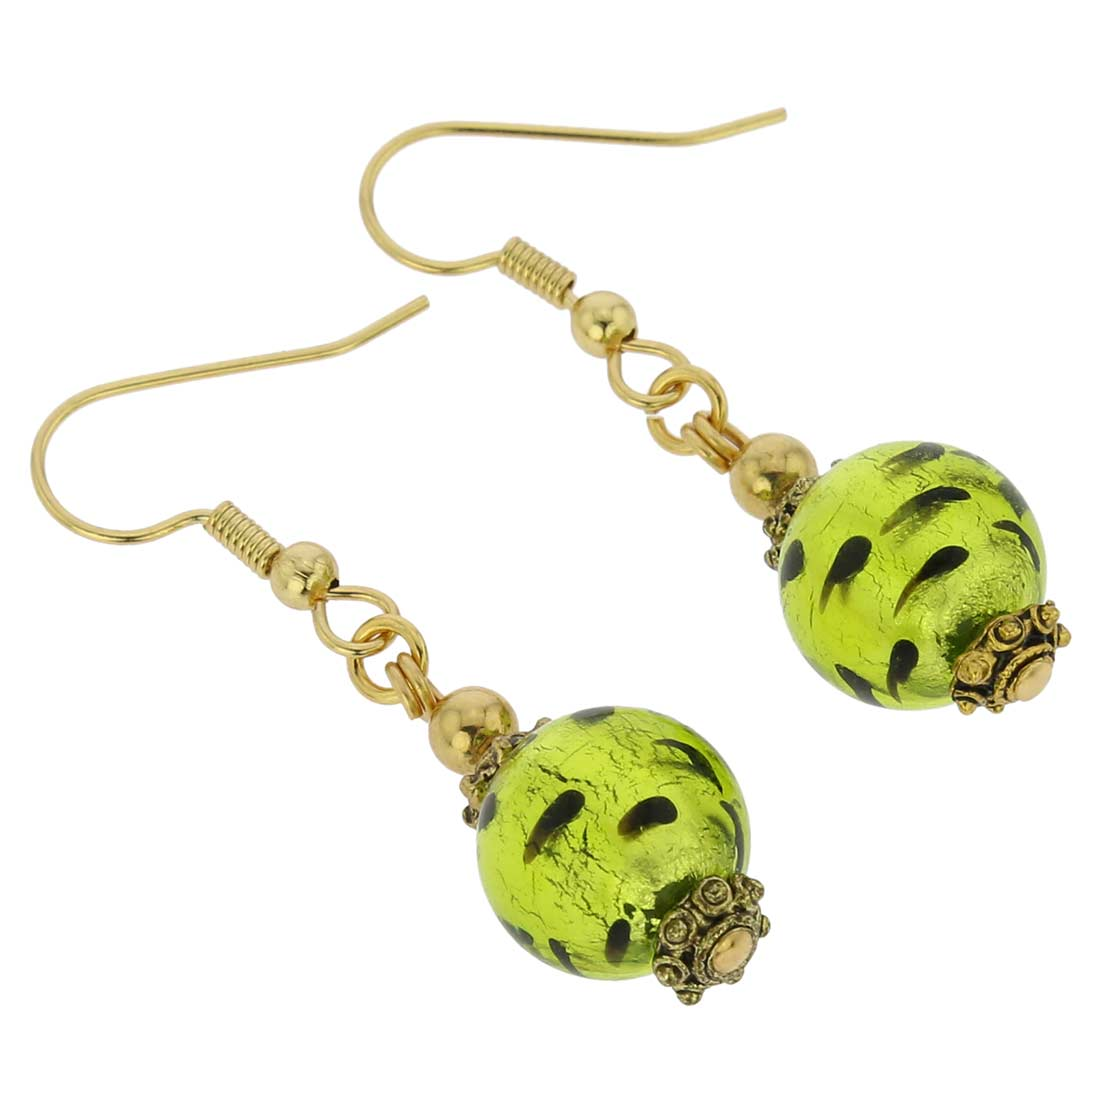 Antico Tesoro Balls Earrings - Spotted Green